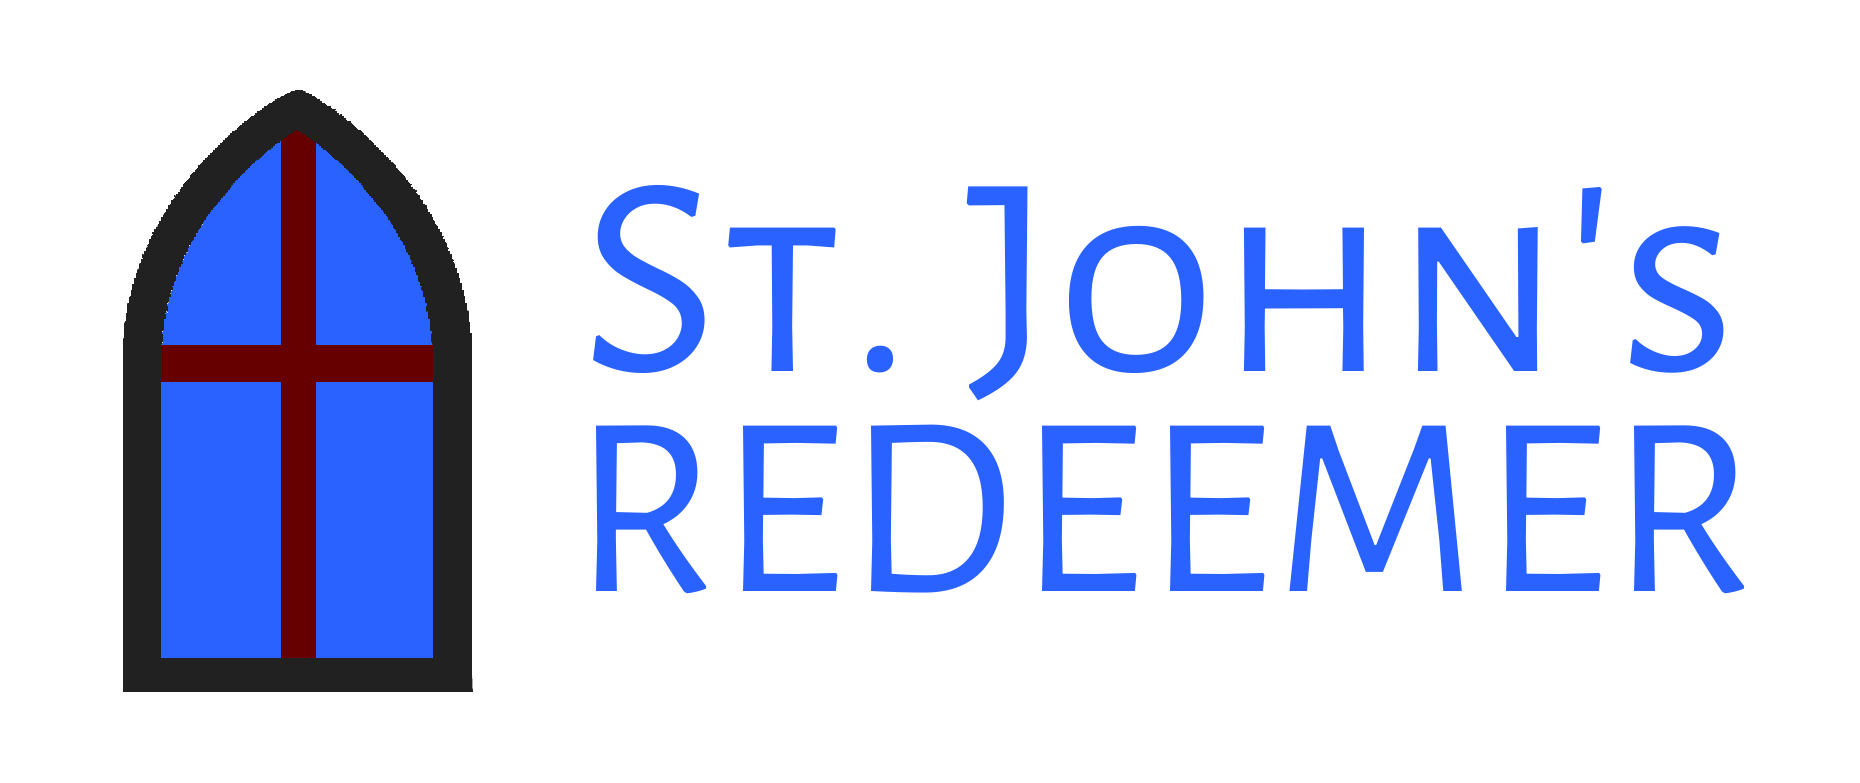 St. John's Redeemer - Broadway and Pine